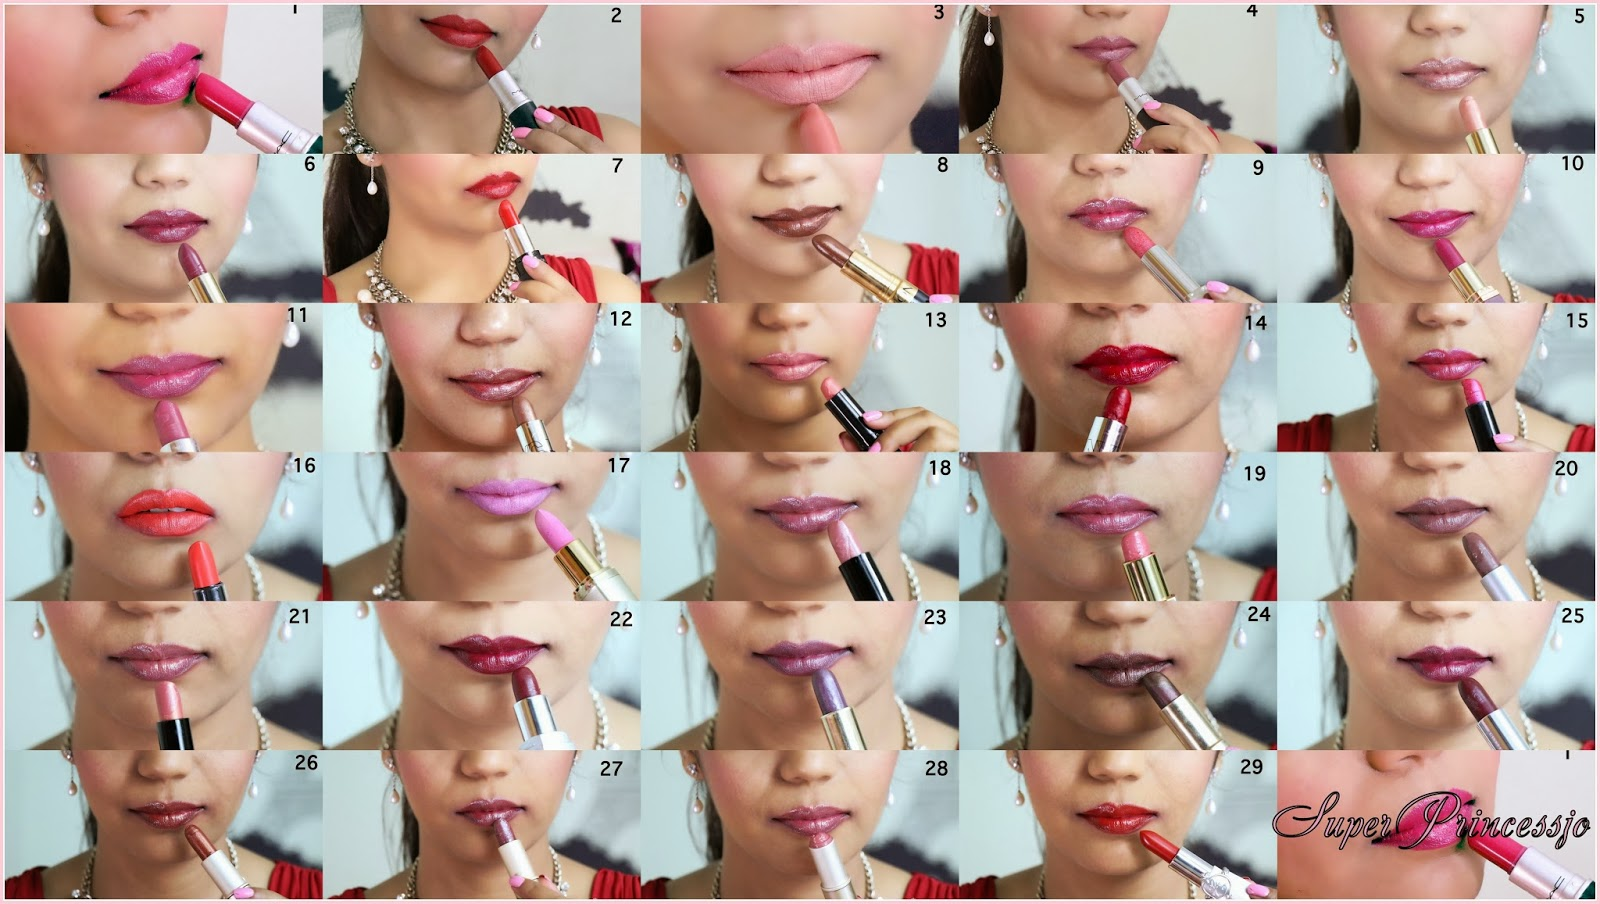 Superprincessjo Lipstick Collection Review And Swatchespictures